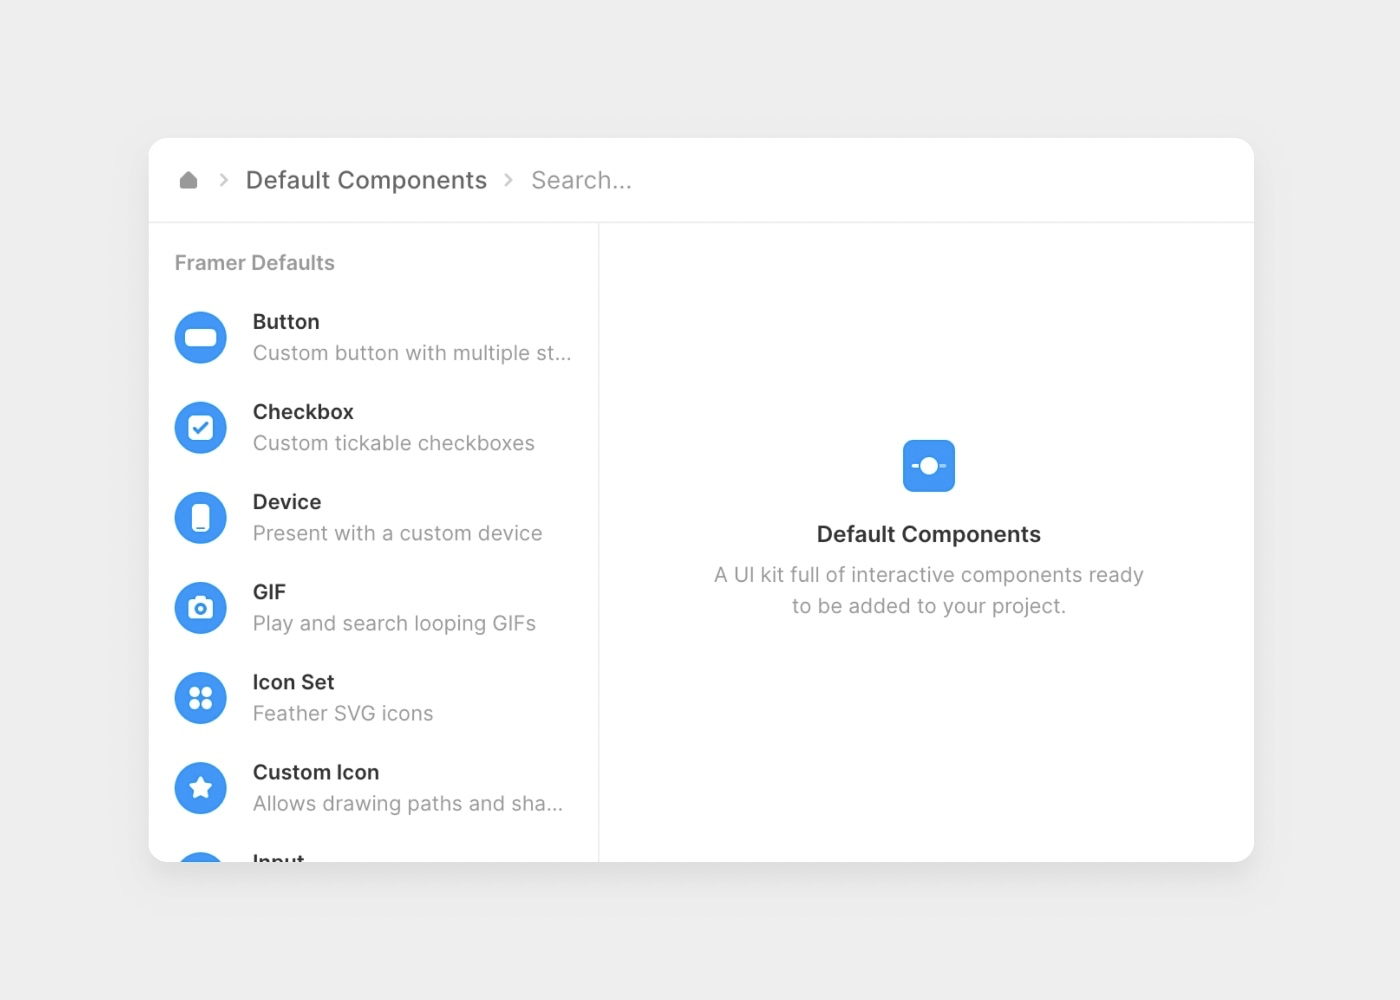 Default components within the insert menu